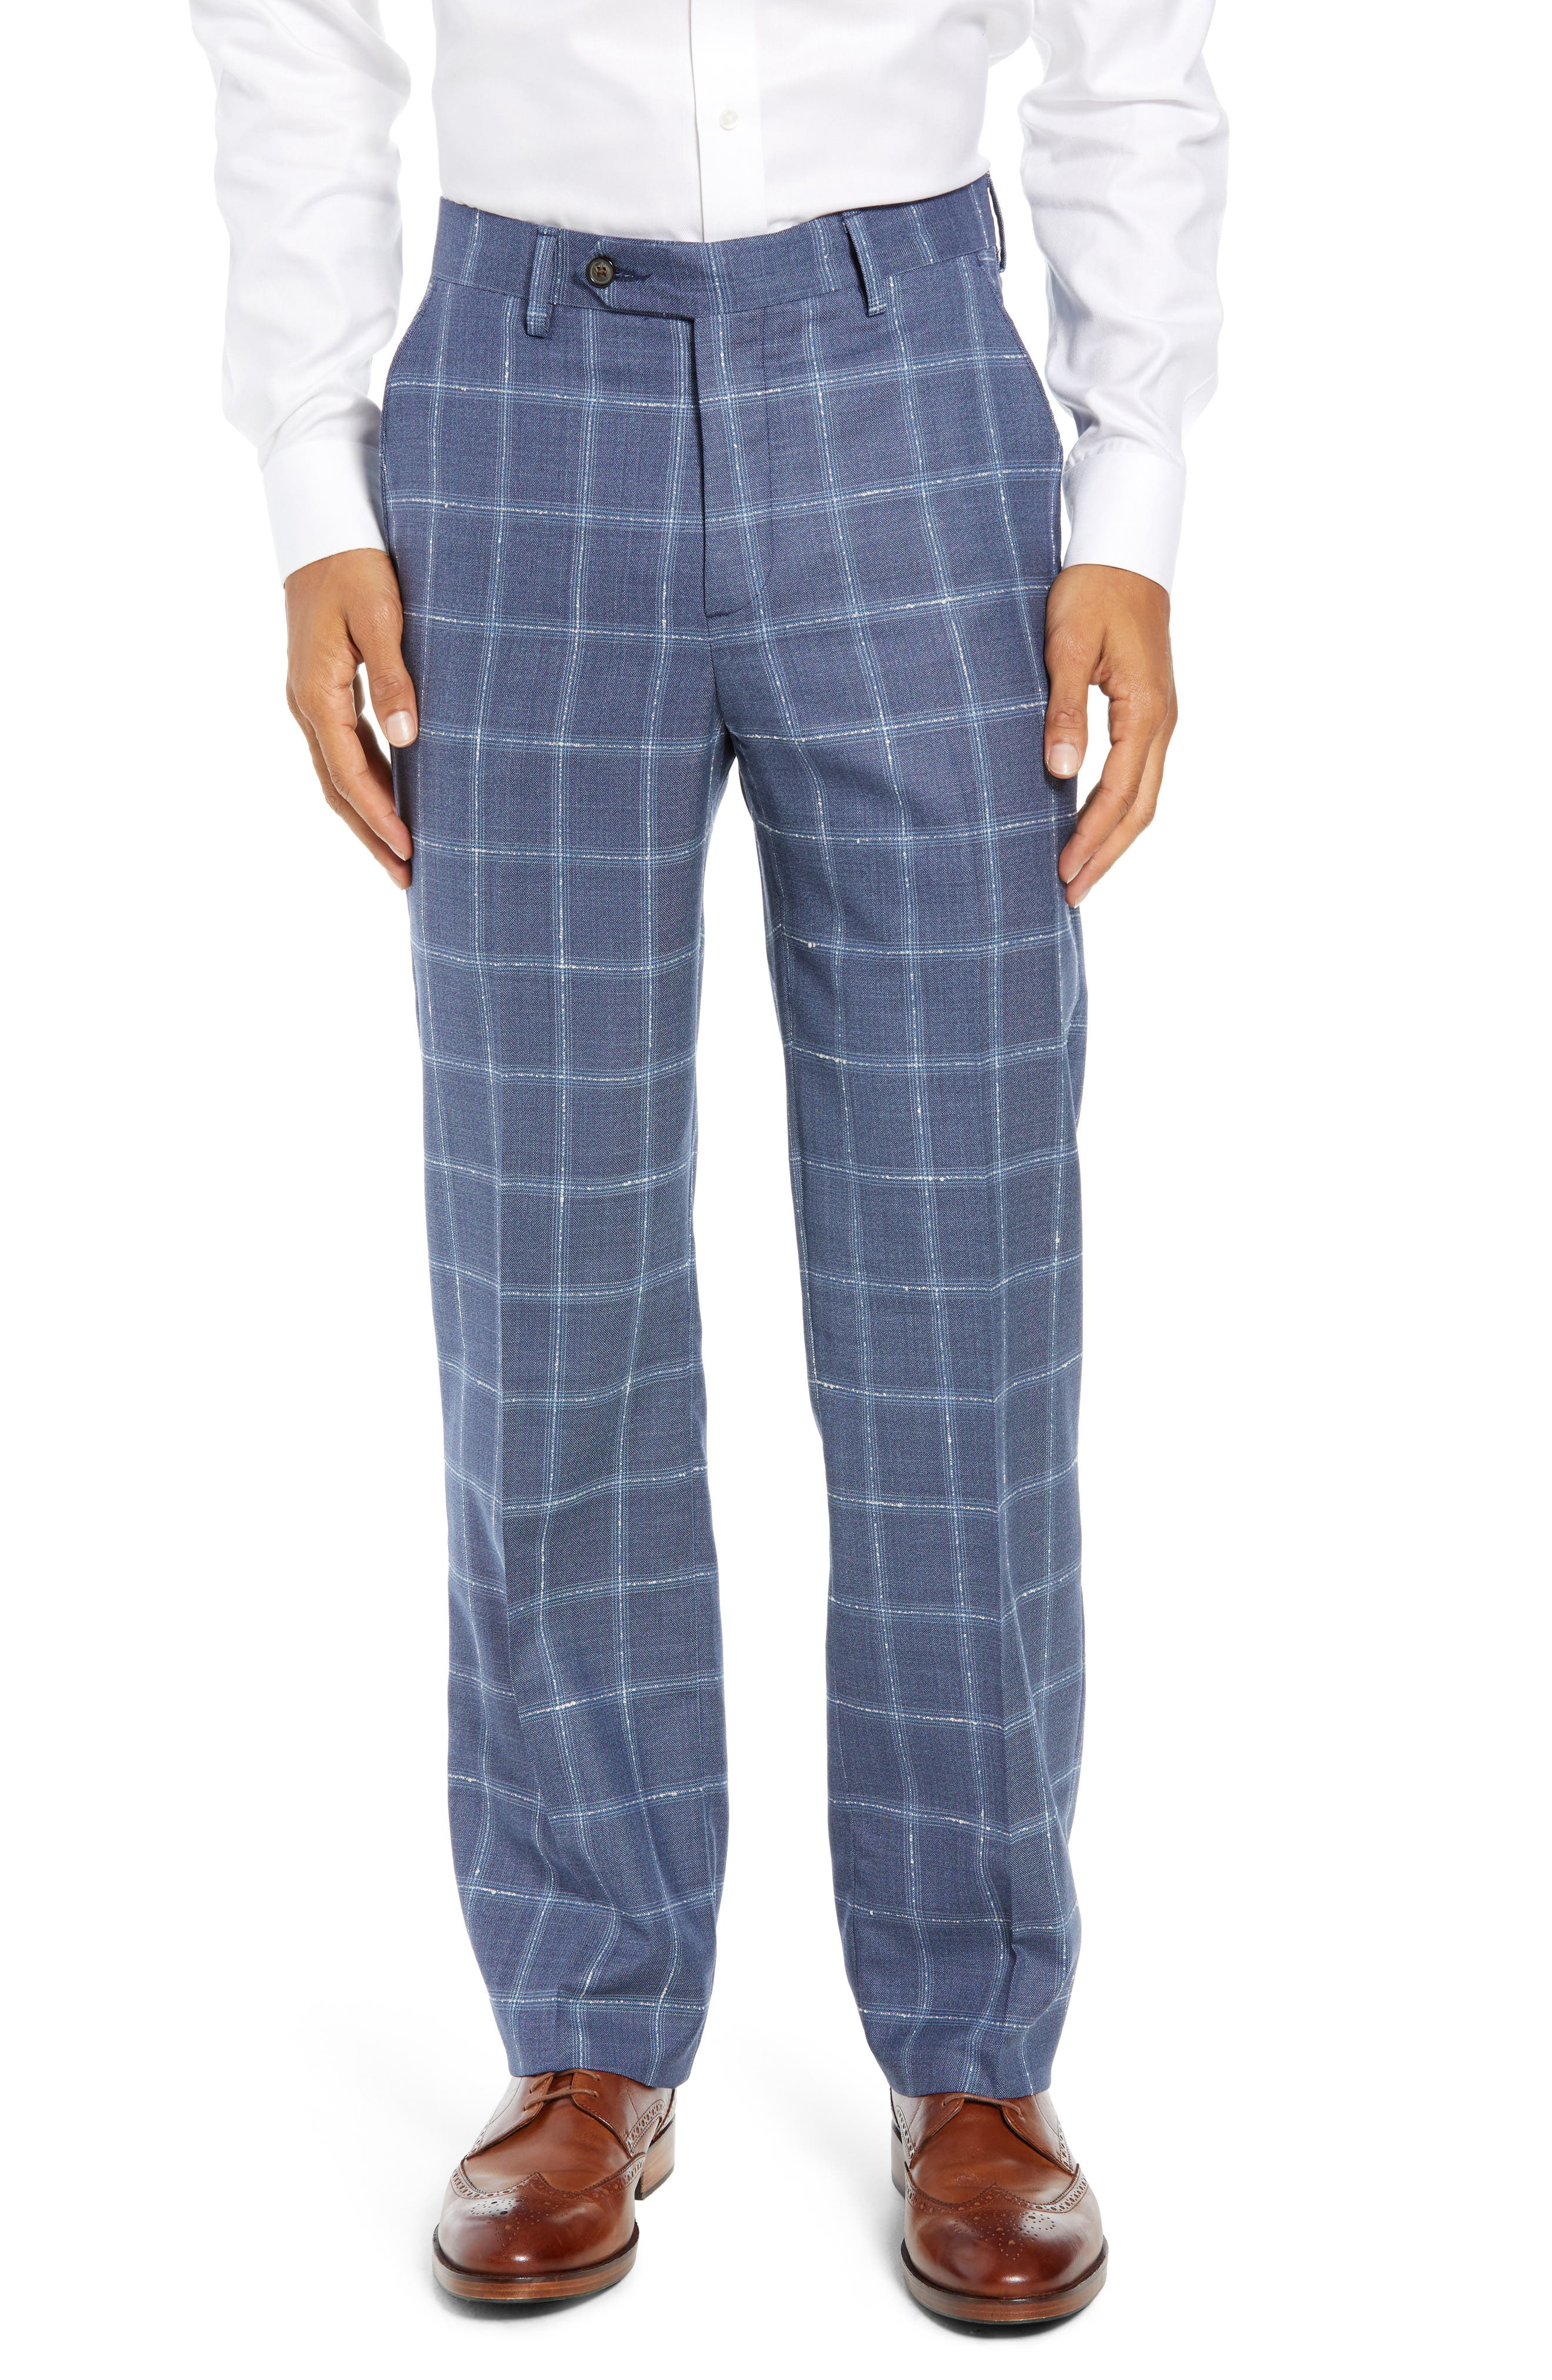 Charming plaid stamps smart trousers crafted from super 100s wool in a classic flat-front cut. Style Name: Berle Manufacturing Flat Front Plaid Wool Trousers. Style Number: 5710705. Available in stores.